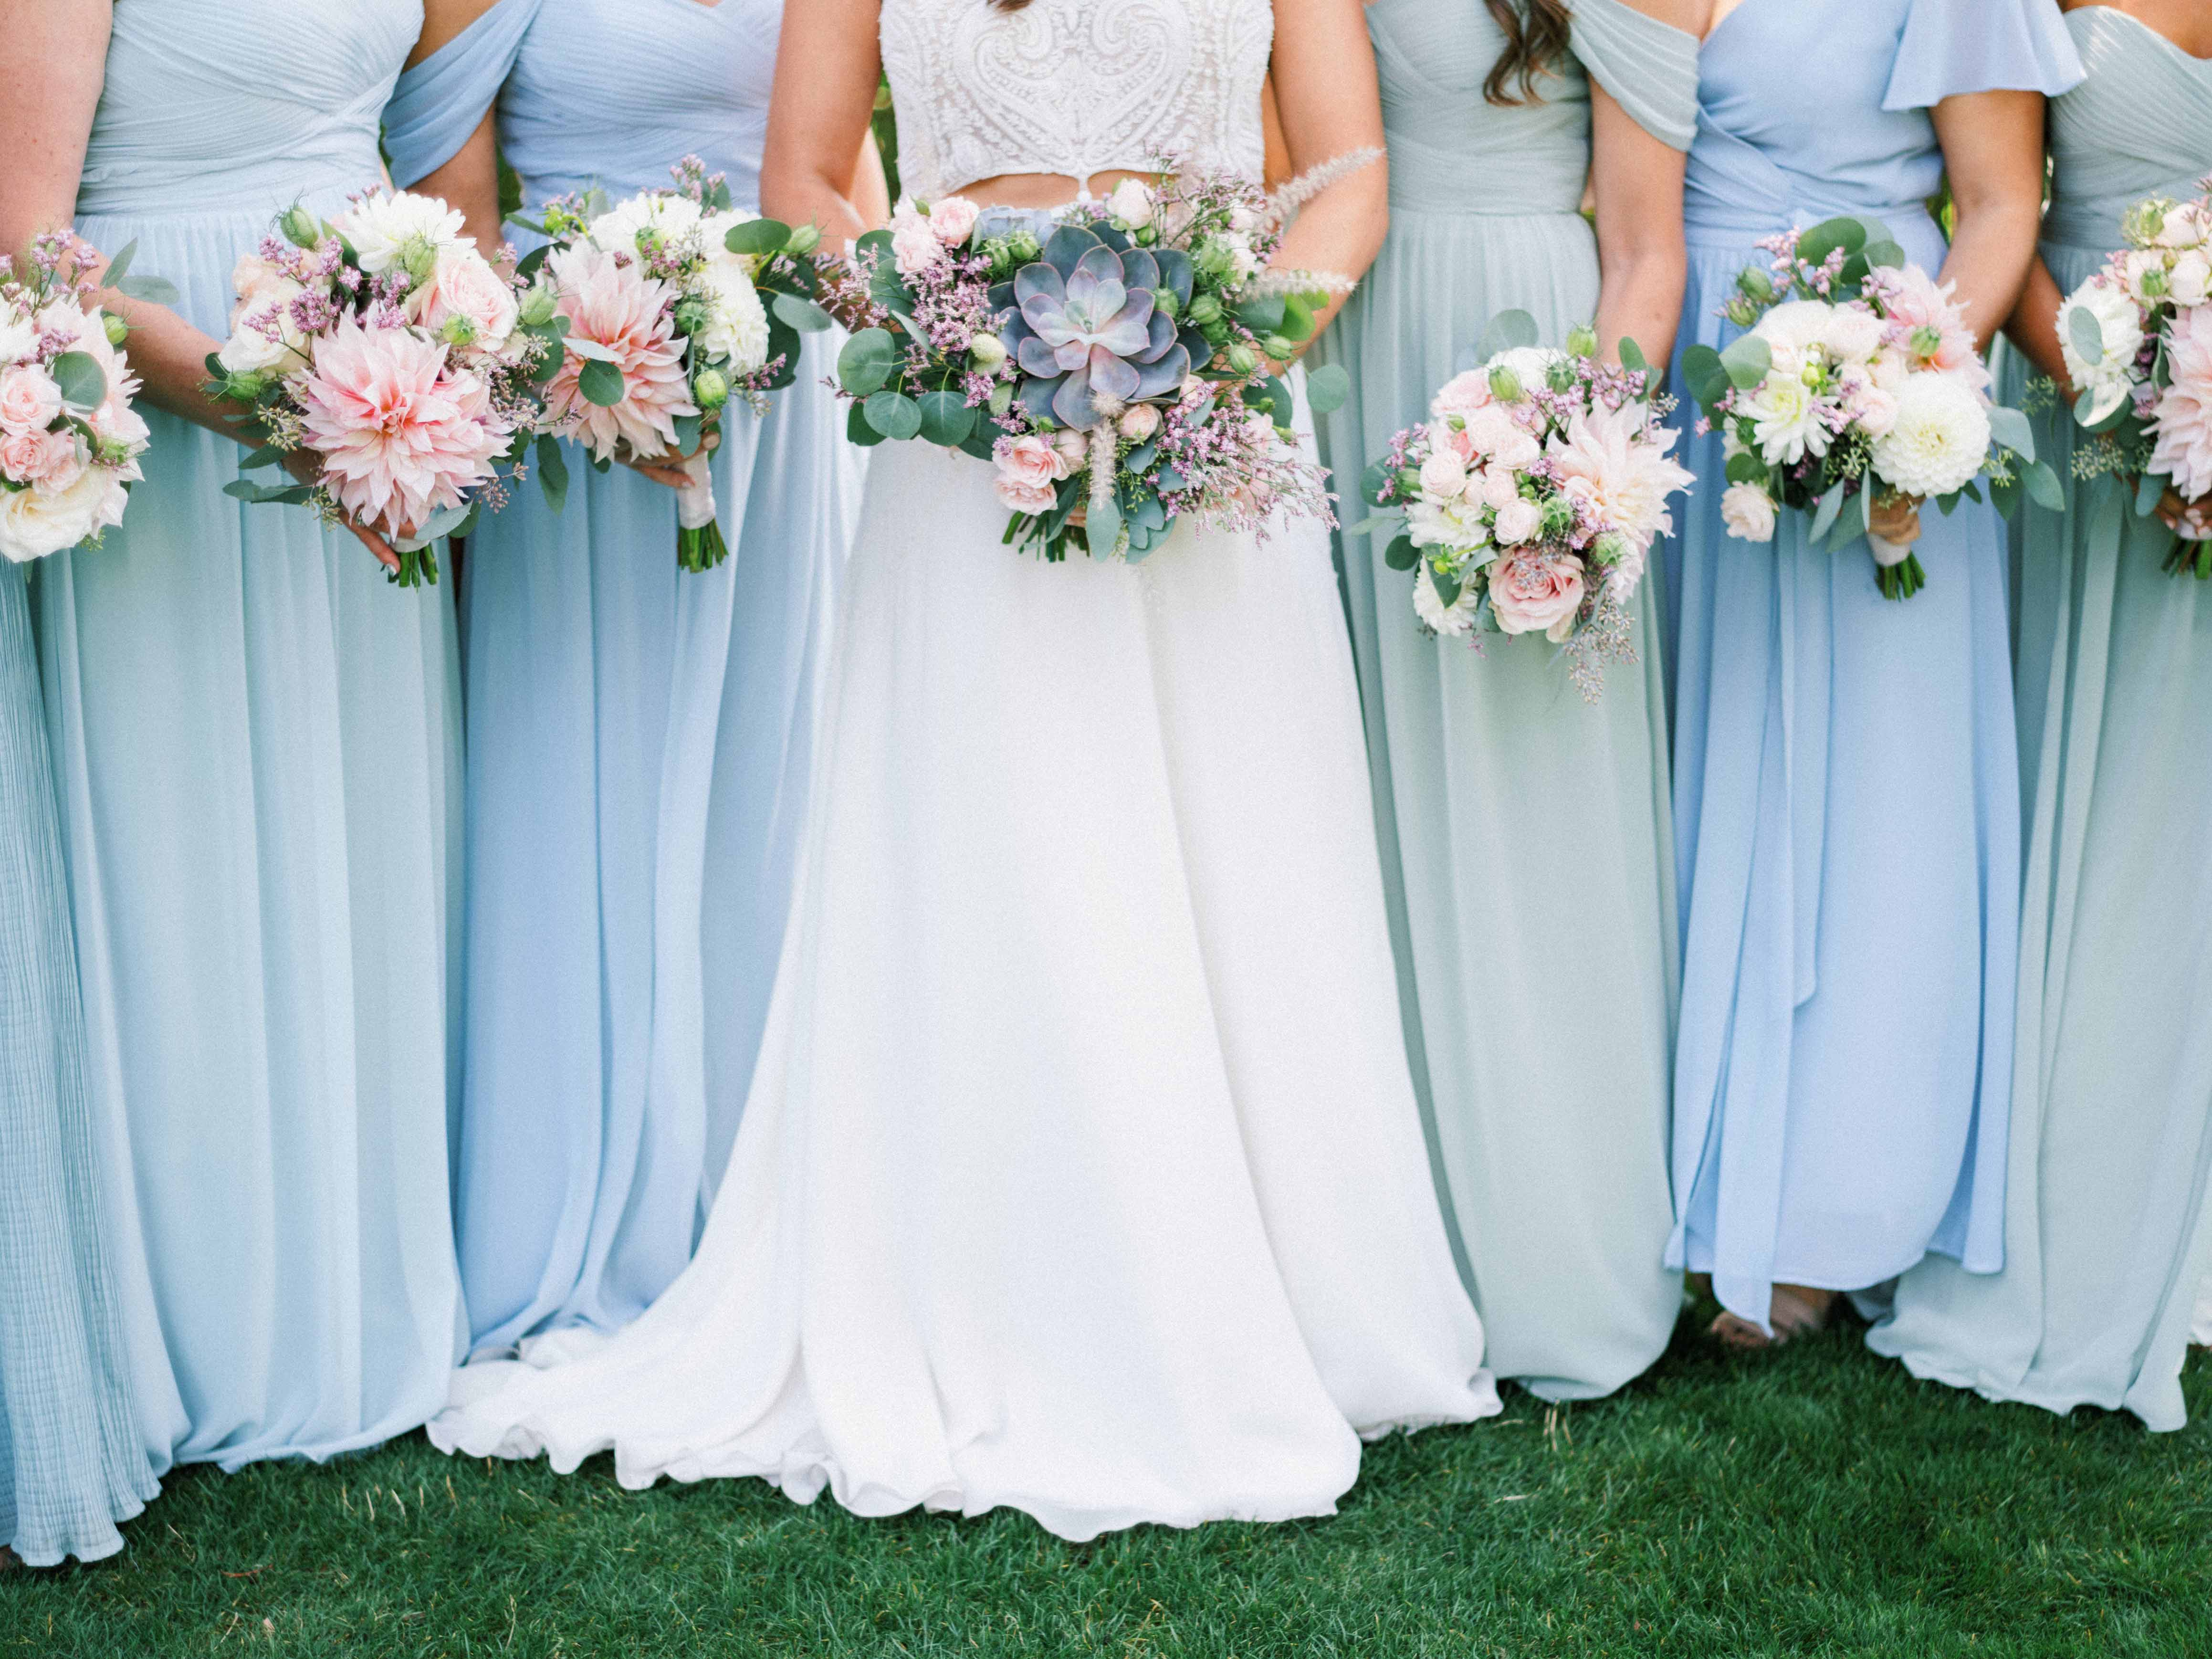 a bride with her brides maids holding bouquets by Flora Nova Design